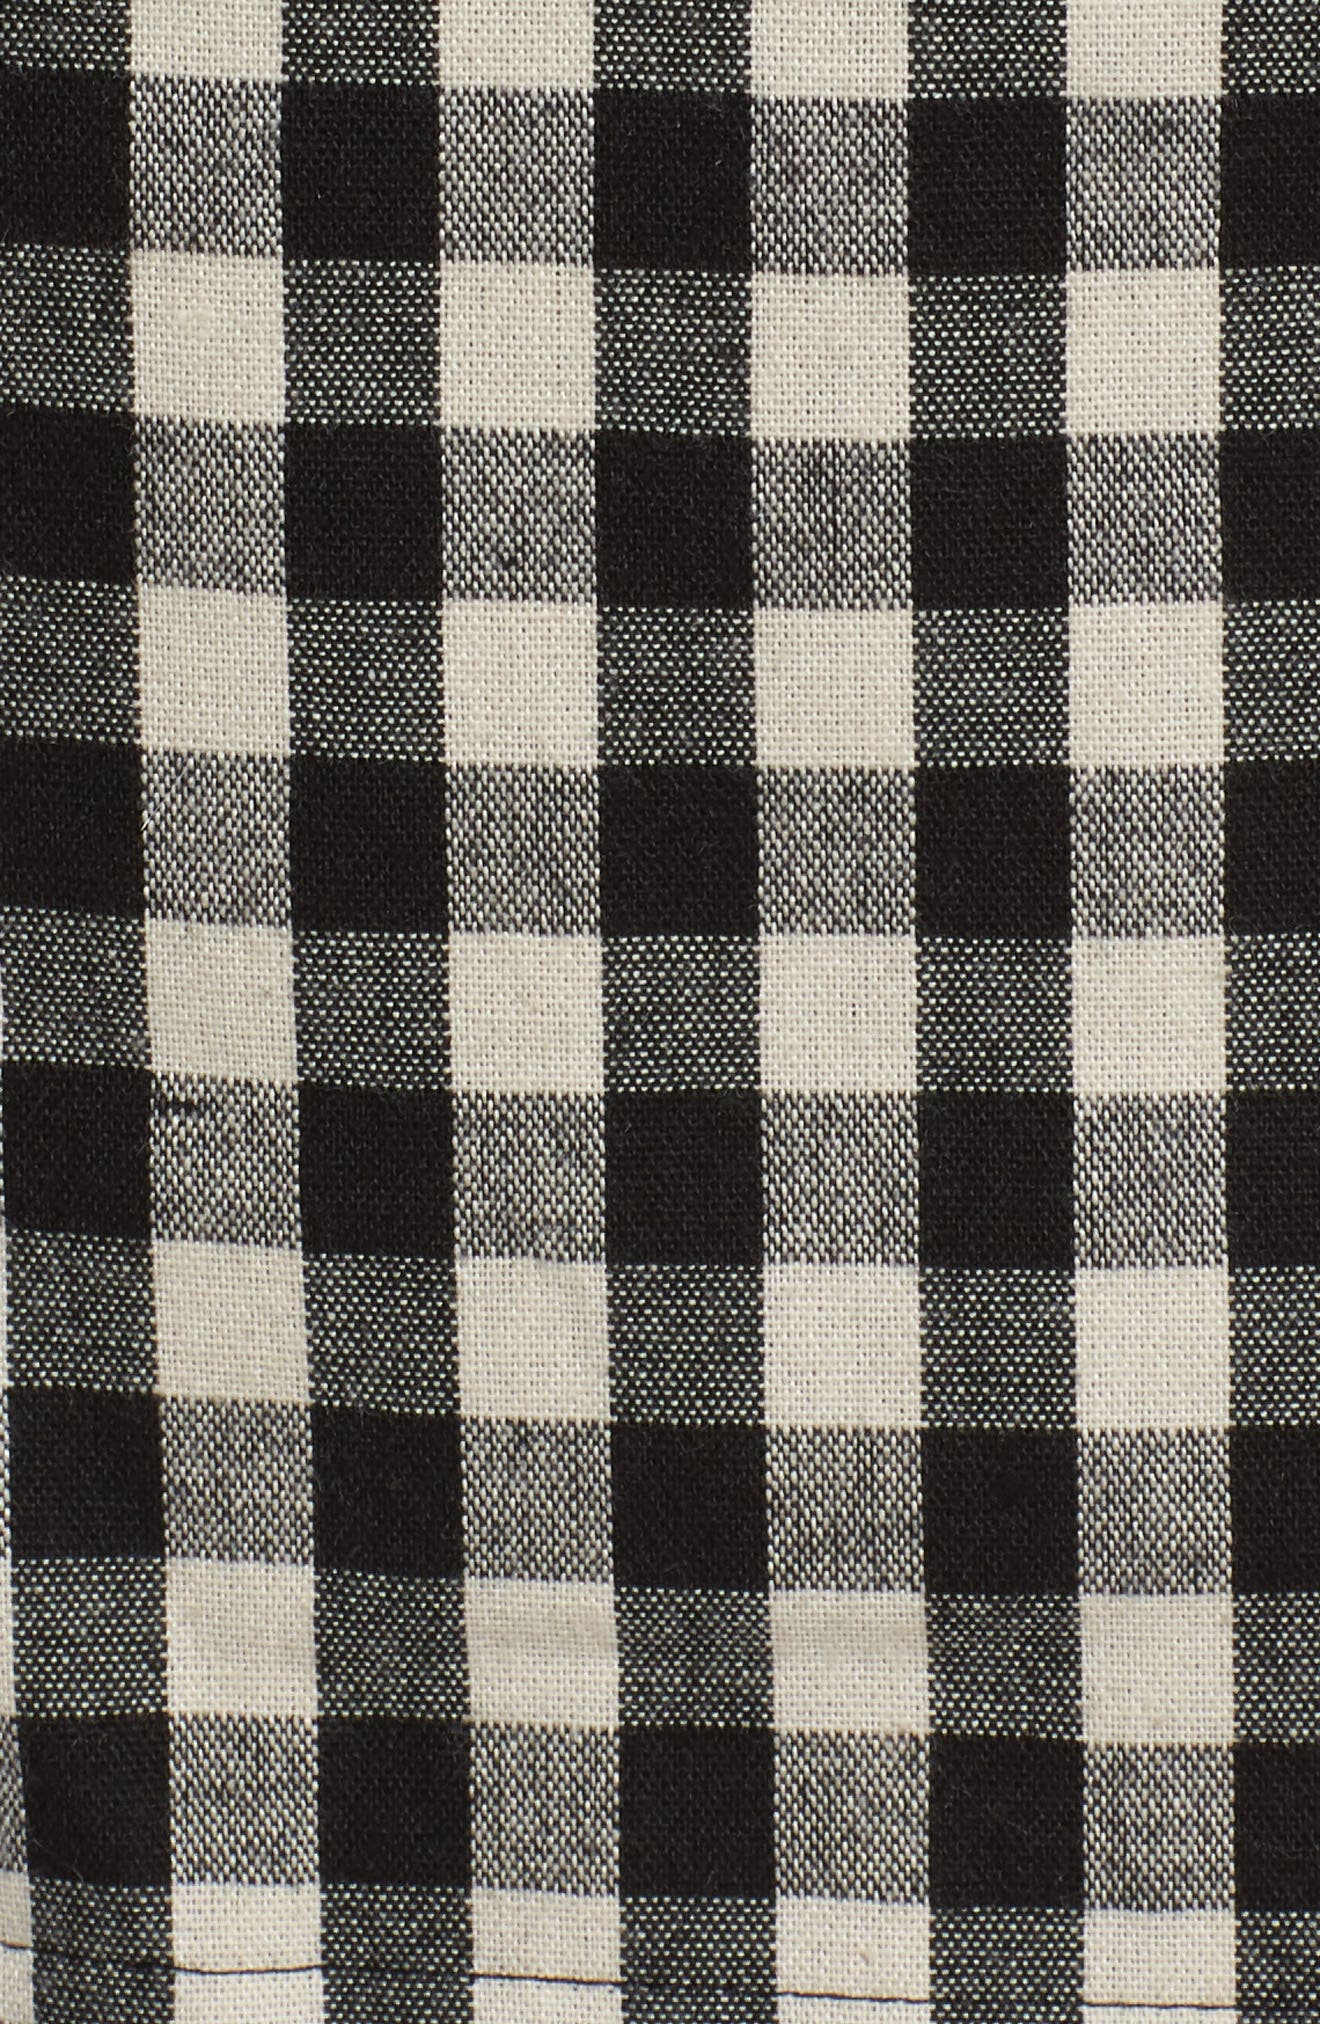 Gingham Trench Coat,                             Alternate thumbnail 7, color,                             004